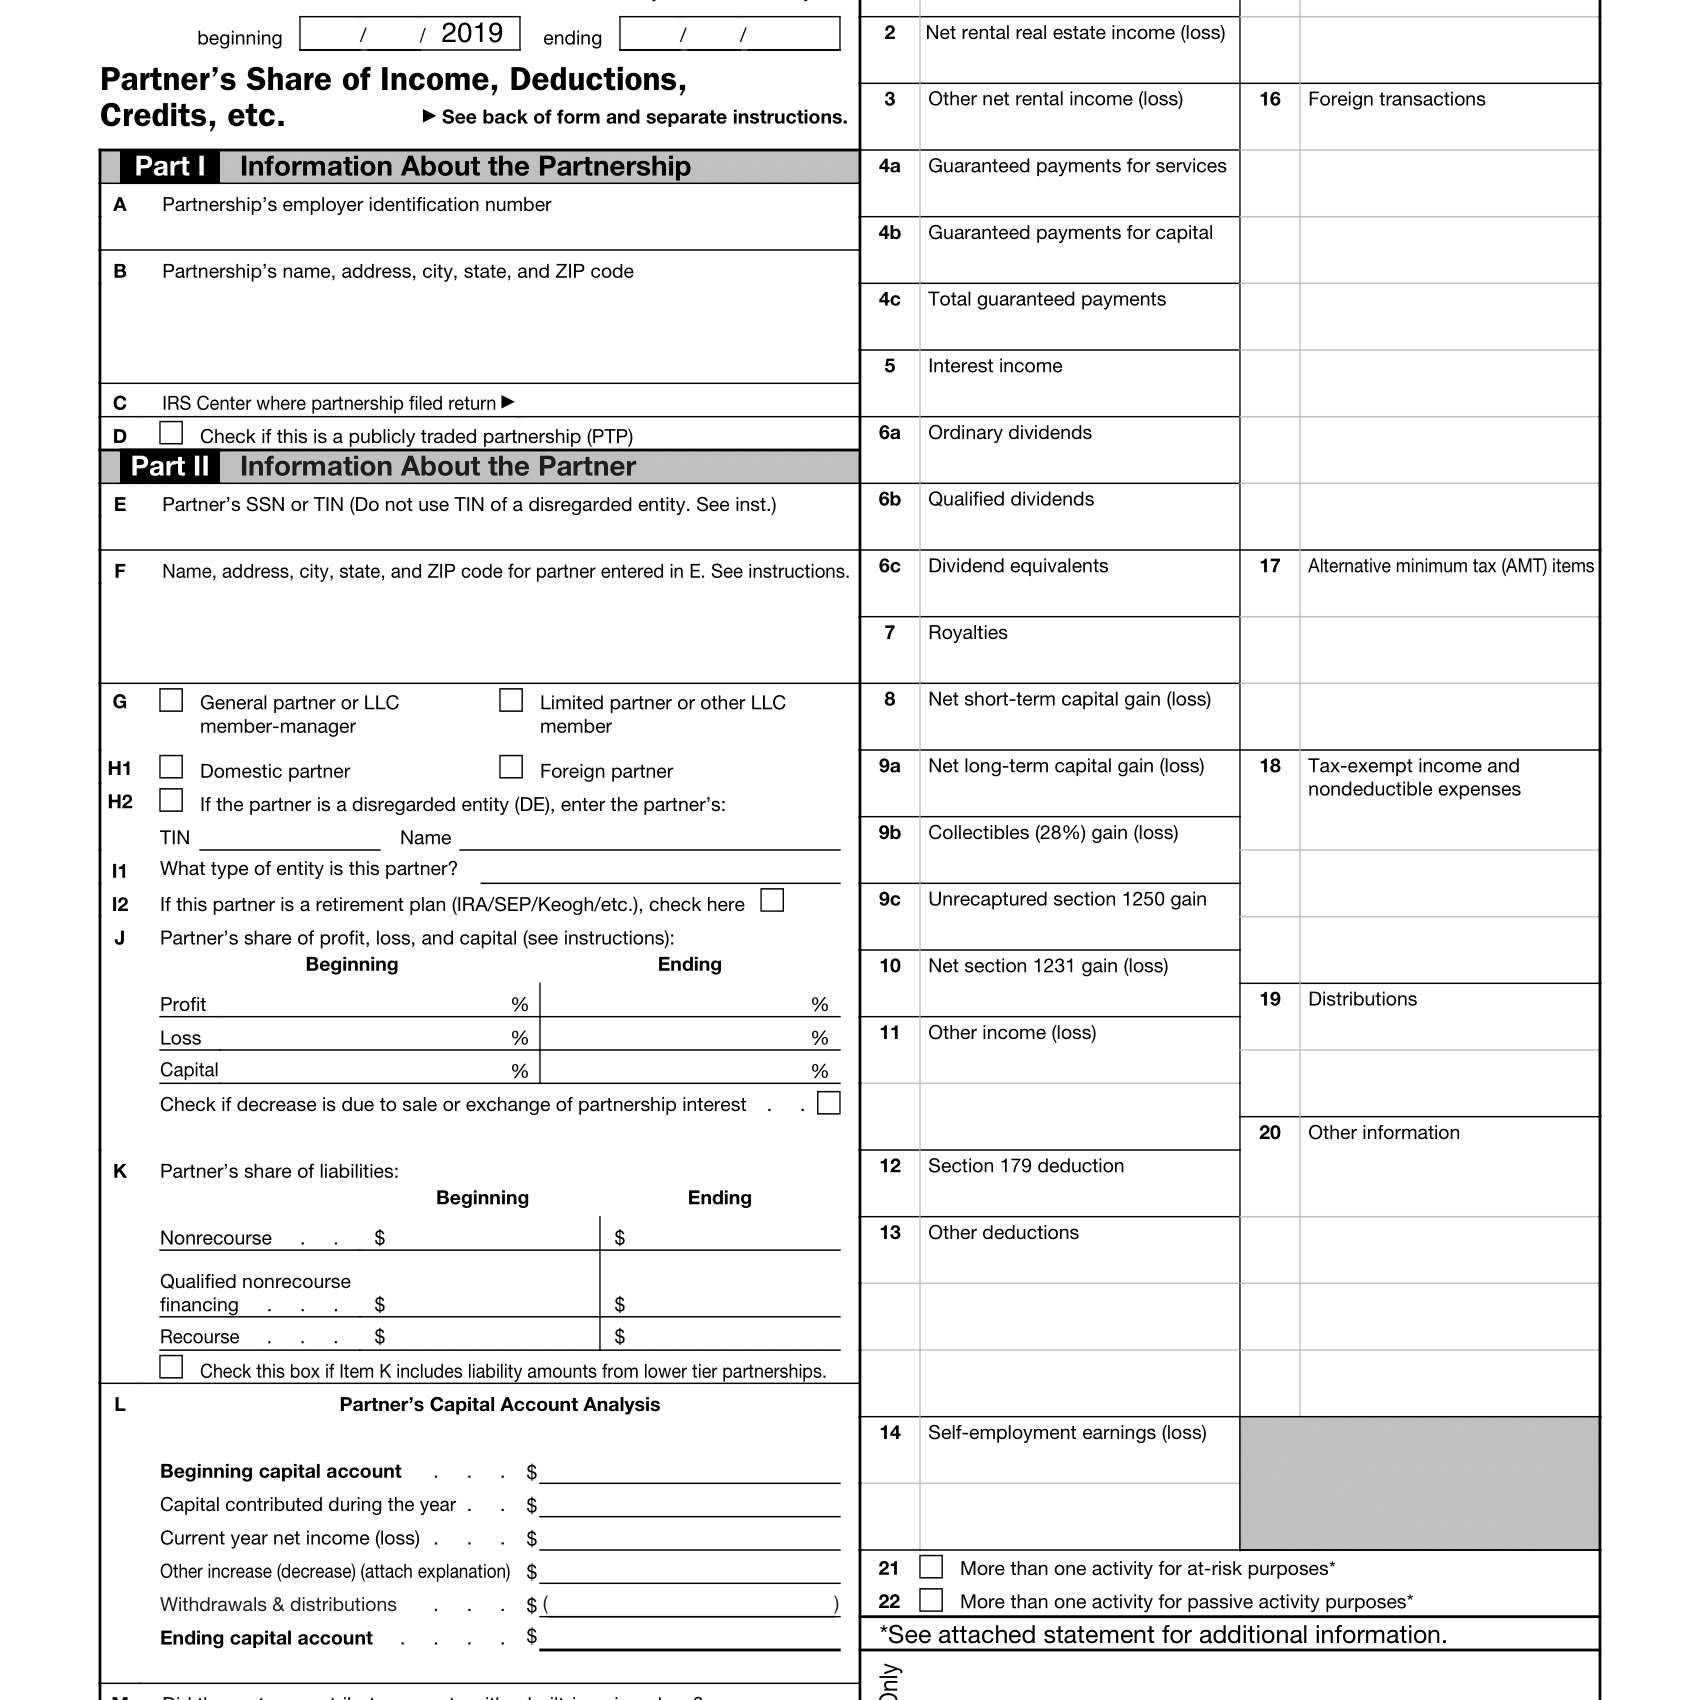 What Are Schedule K-1 Documents Used For?